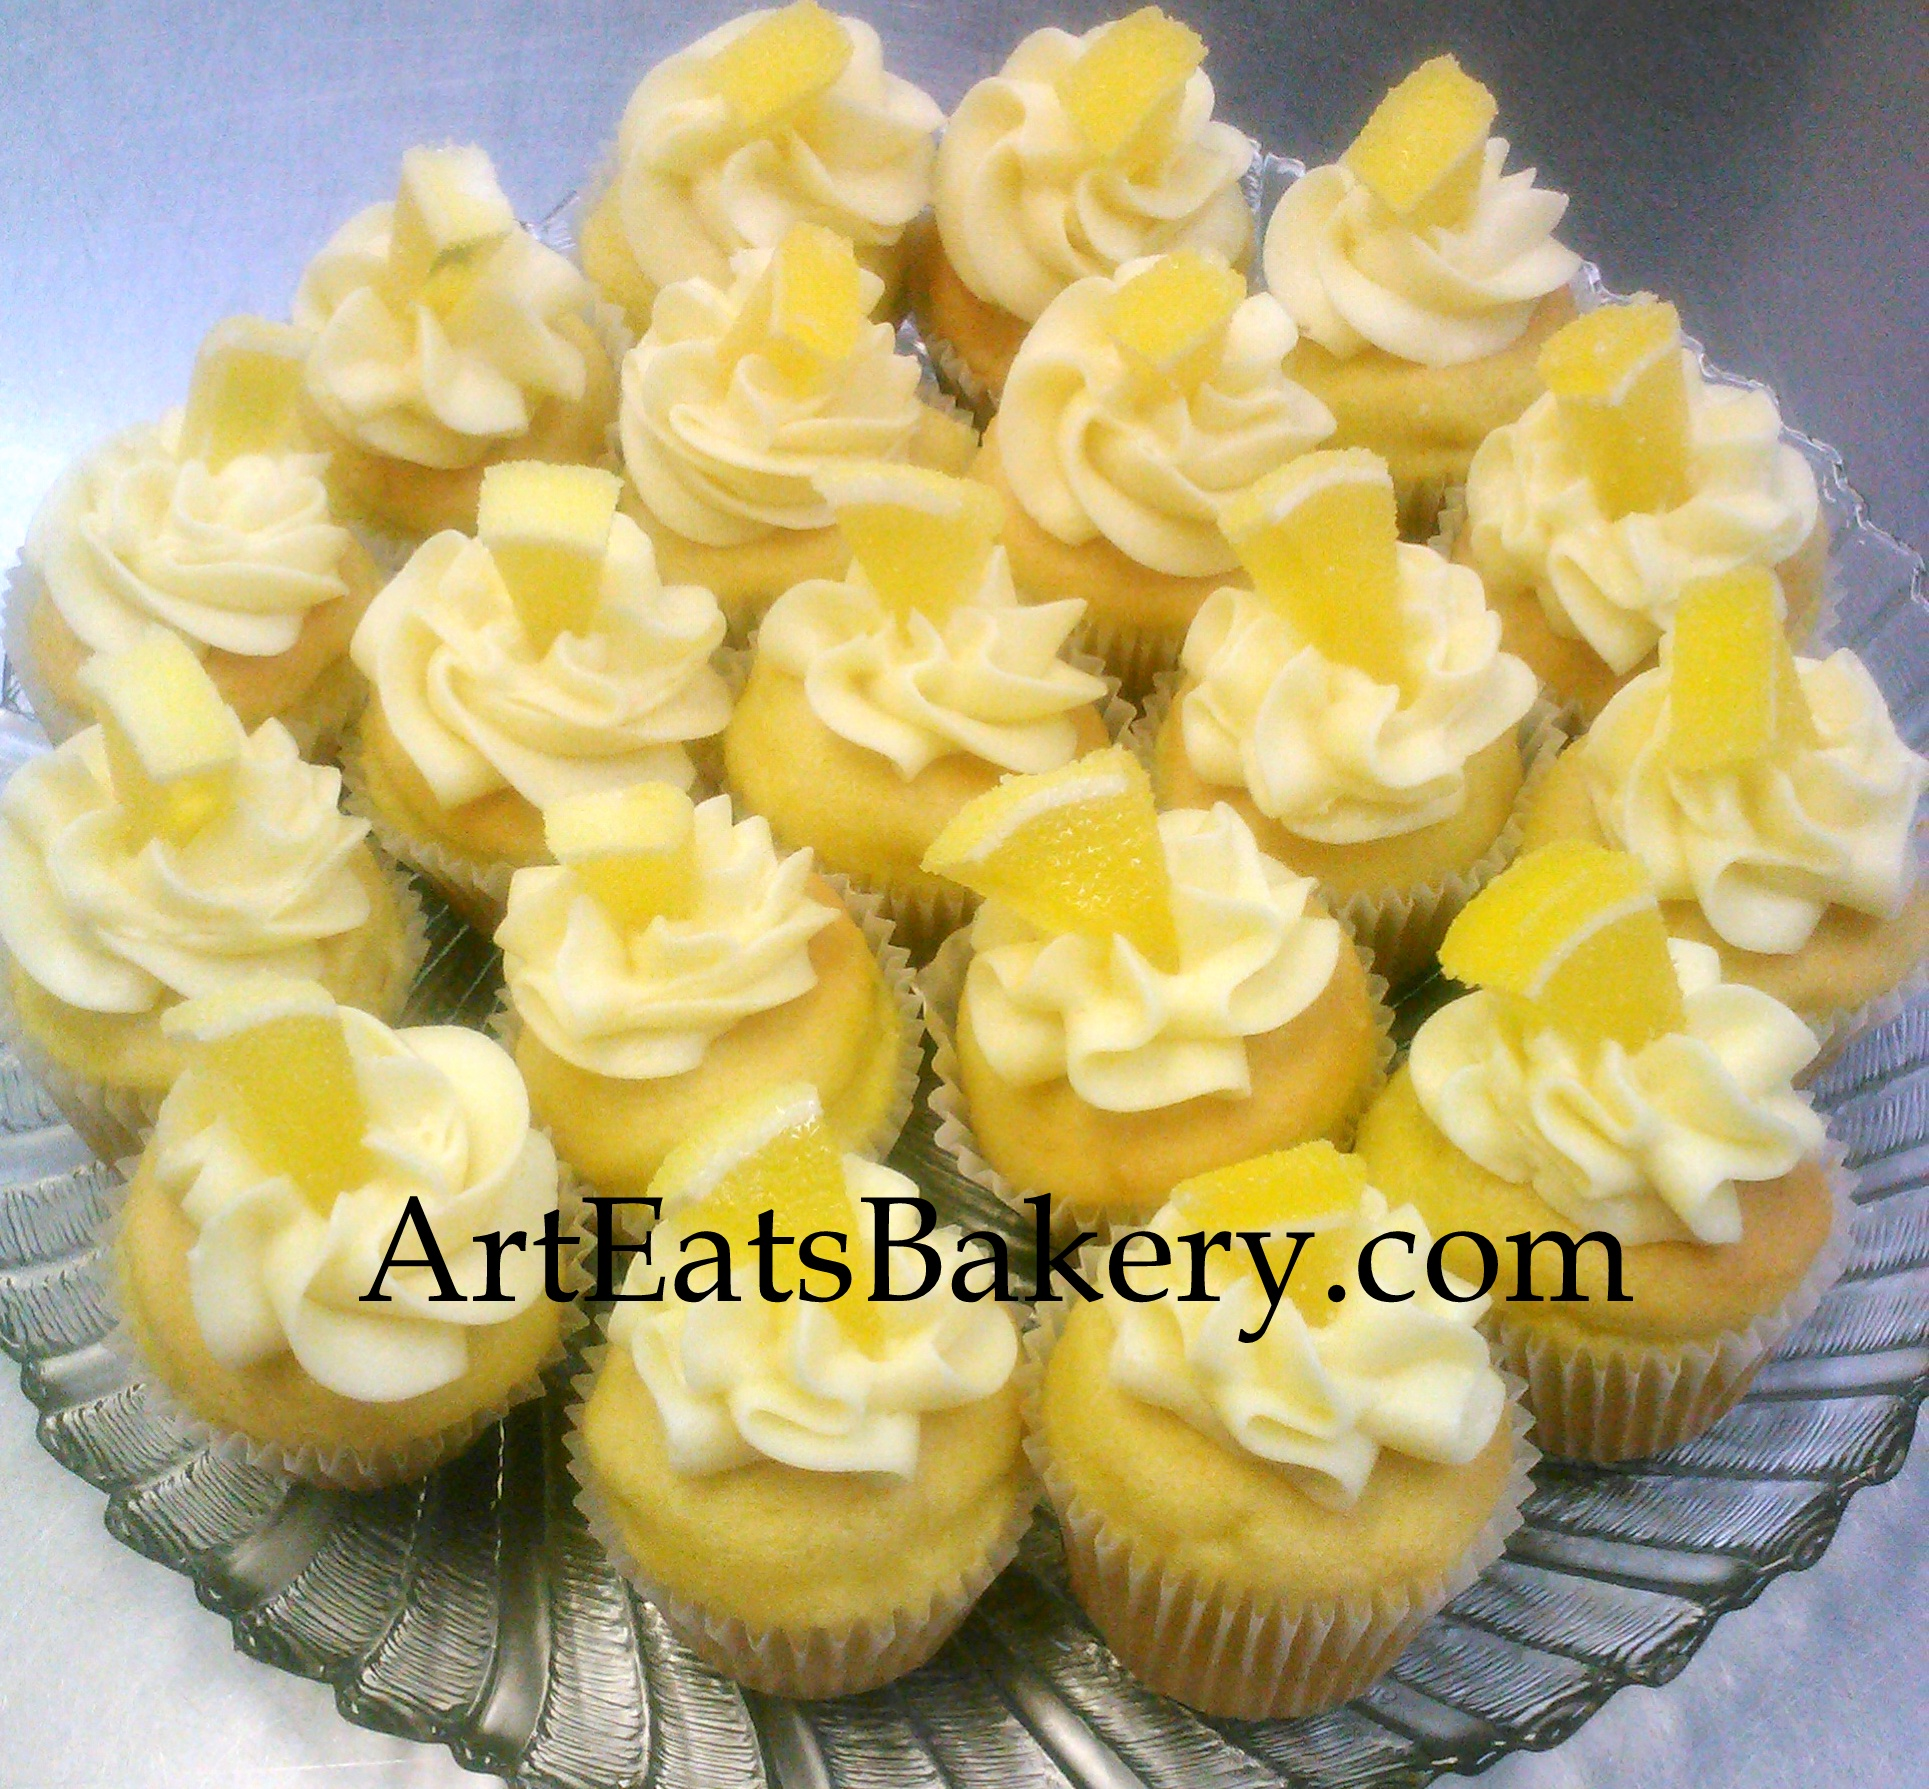 Lucious tart lemon cupcakes with lemon butter cream.jpg